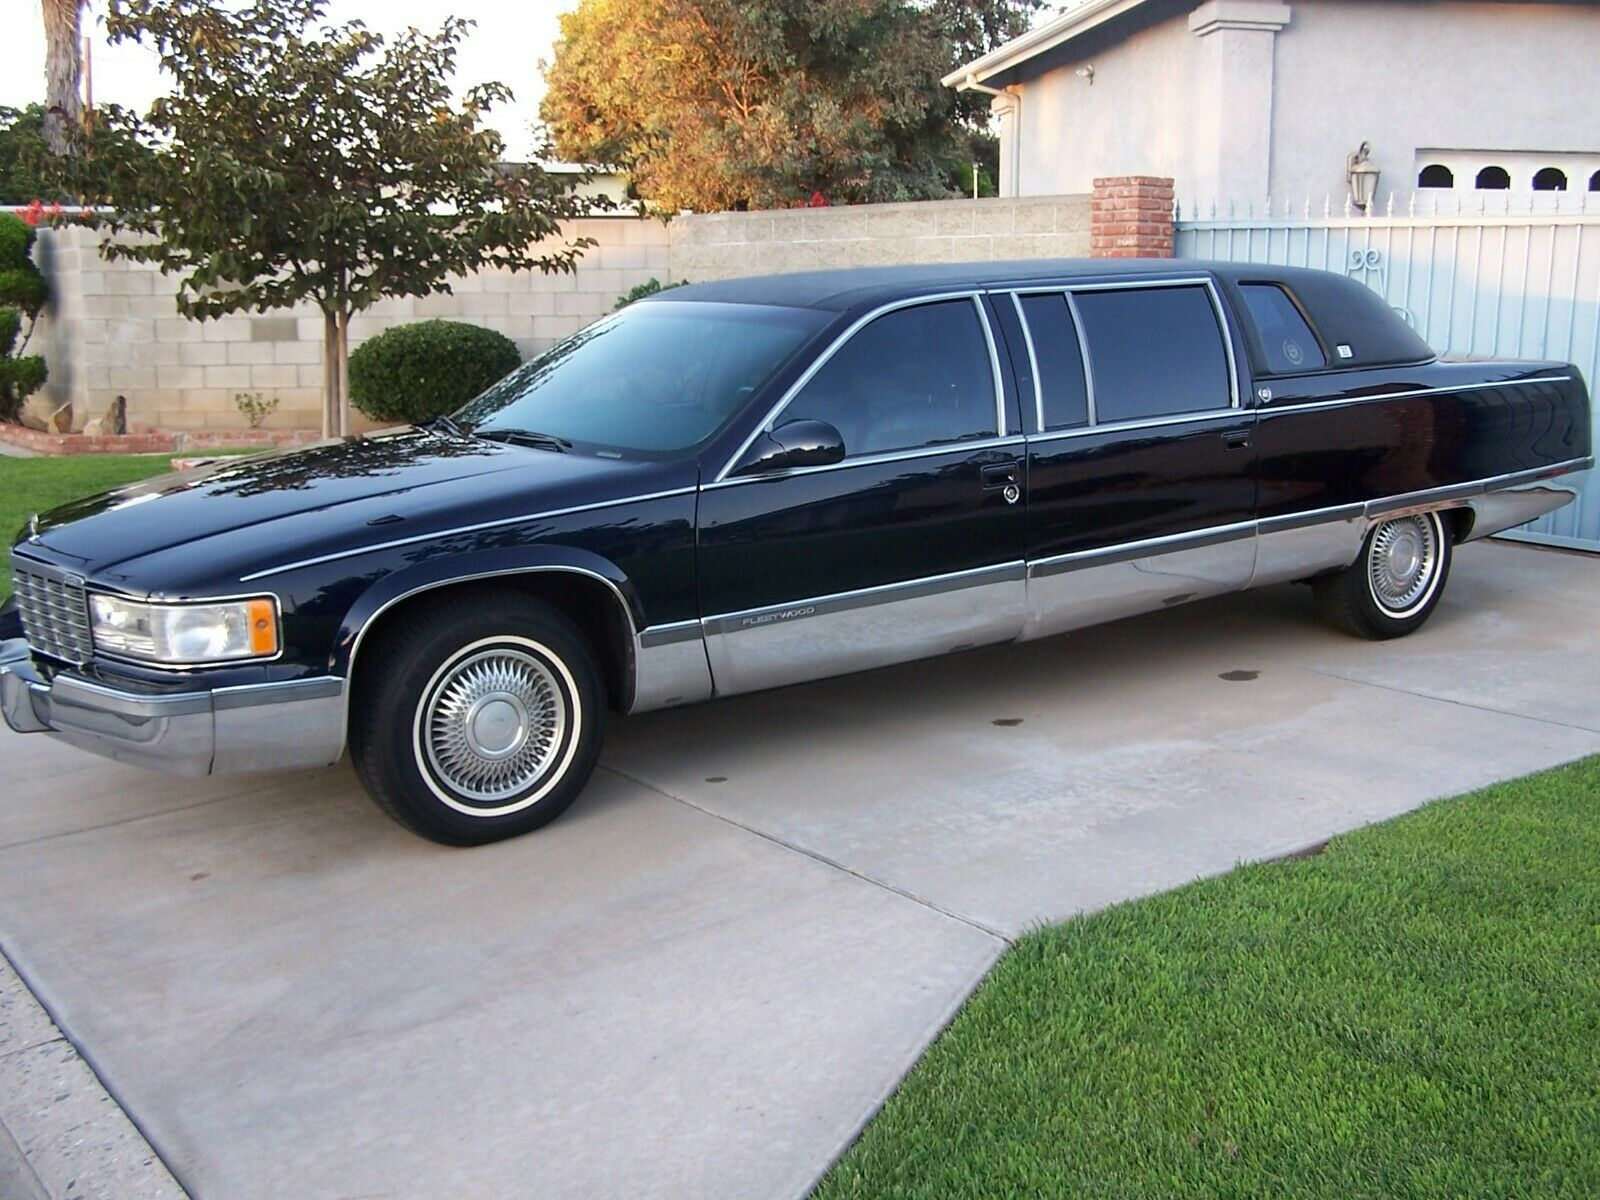 garaged 1995 cadillac fleetwood limousine for sale